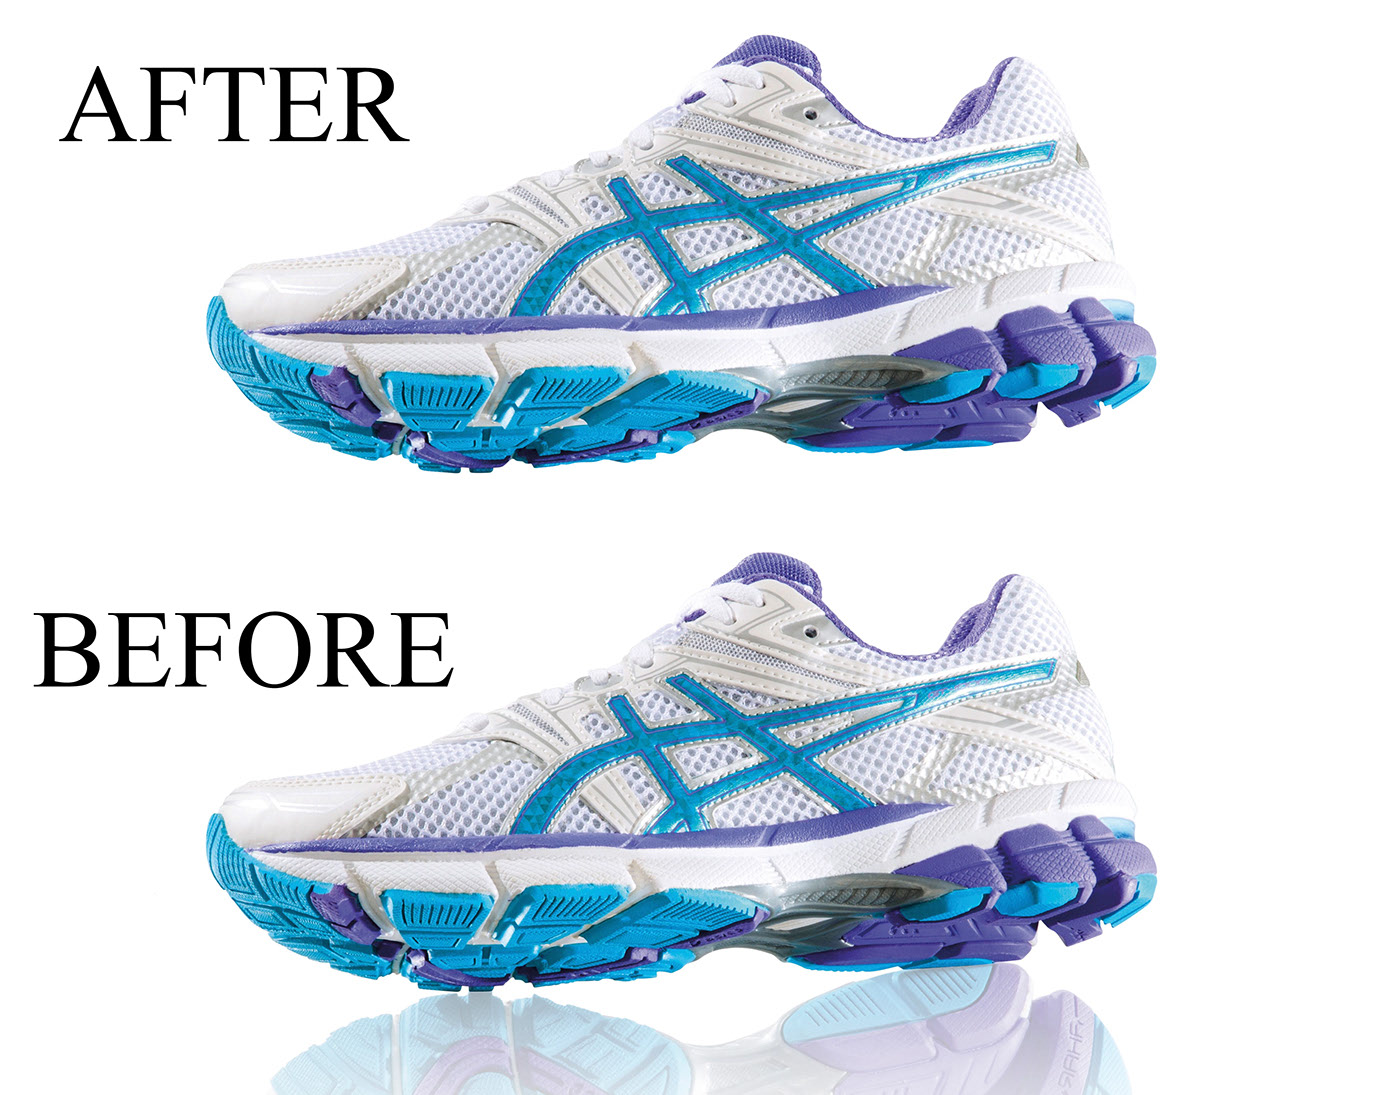 I will photoshop editing or amazon product editing background removal